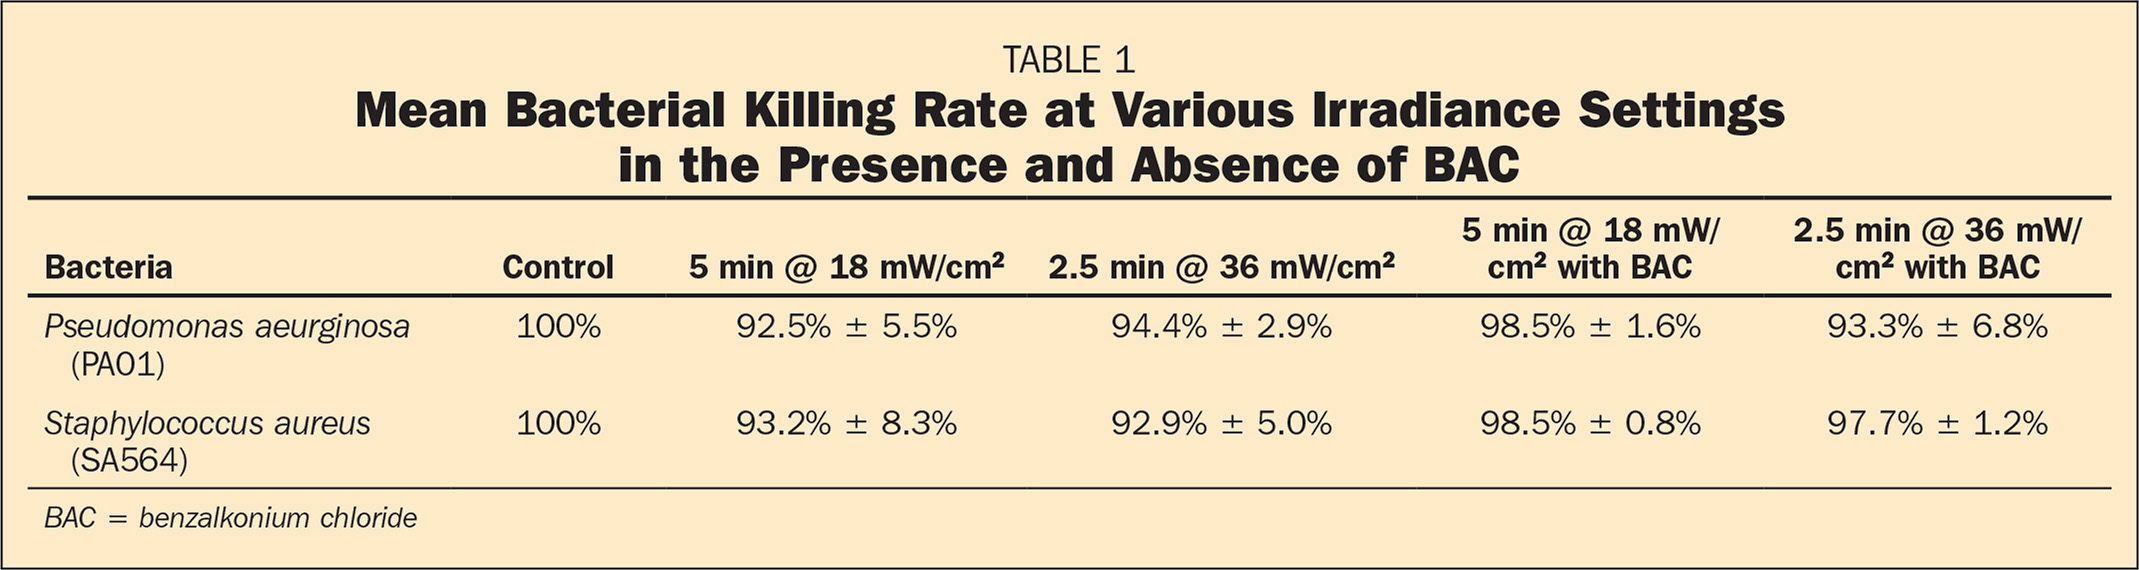 Mean Bacterial Killing Rate at Various Irradiance Settings in the Presence and Absence of BAC